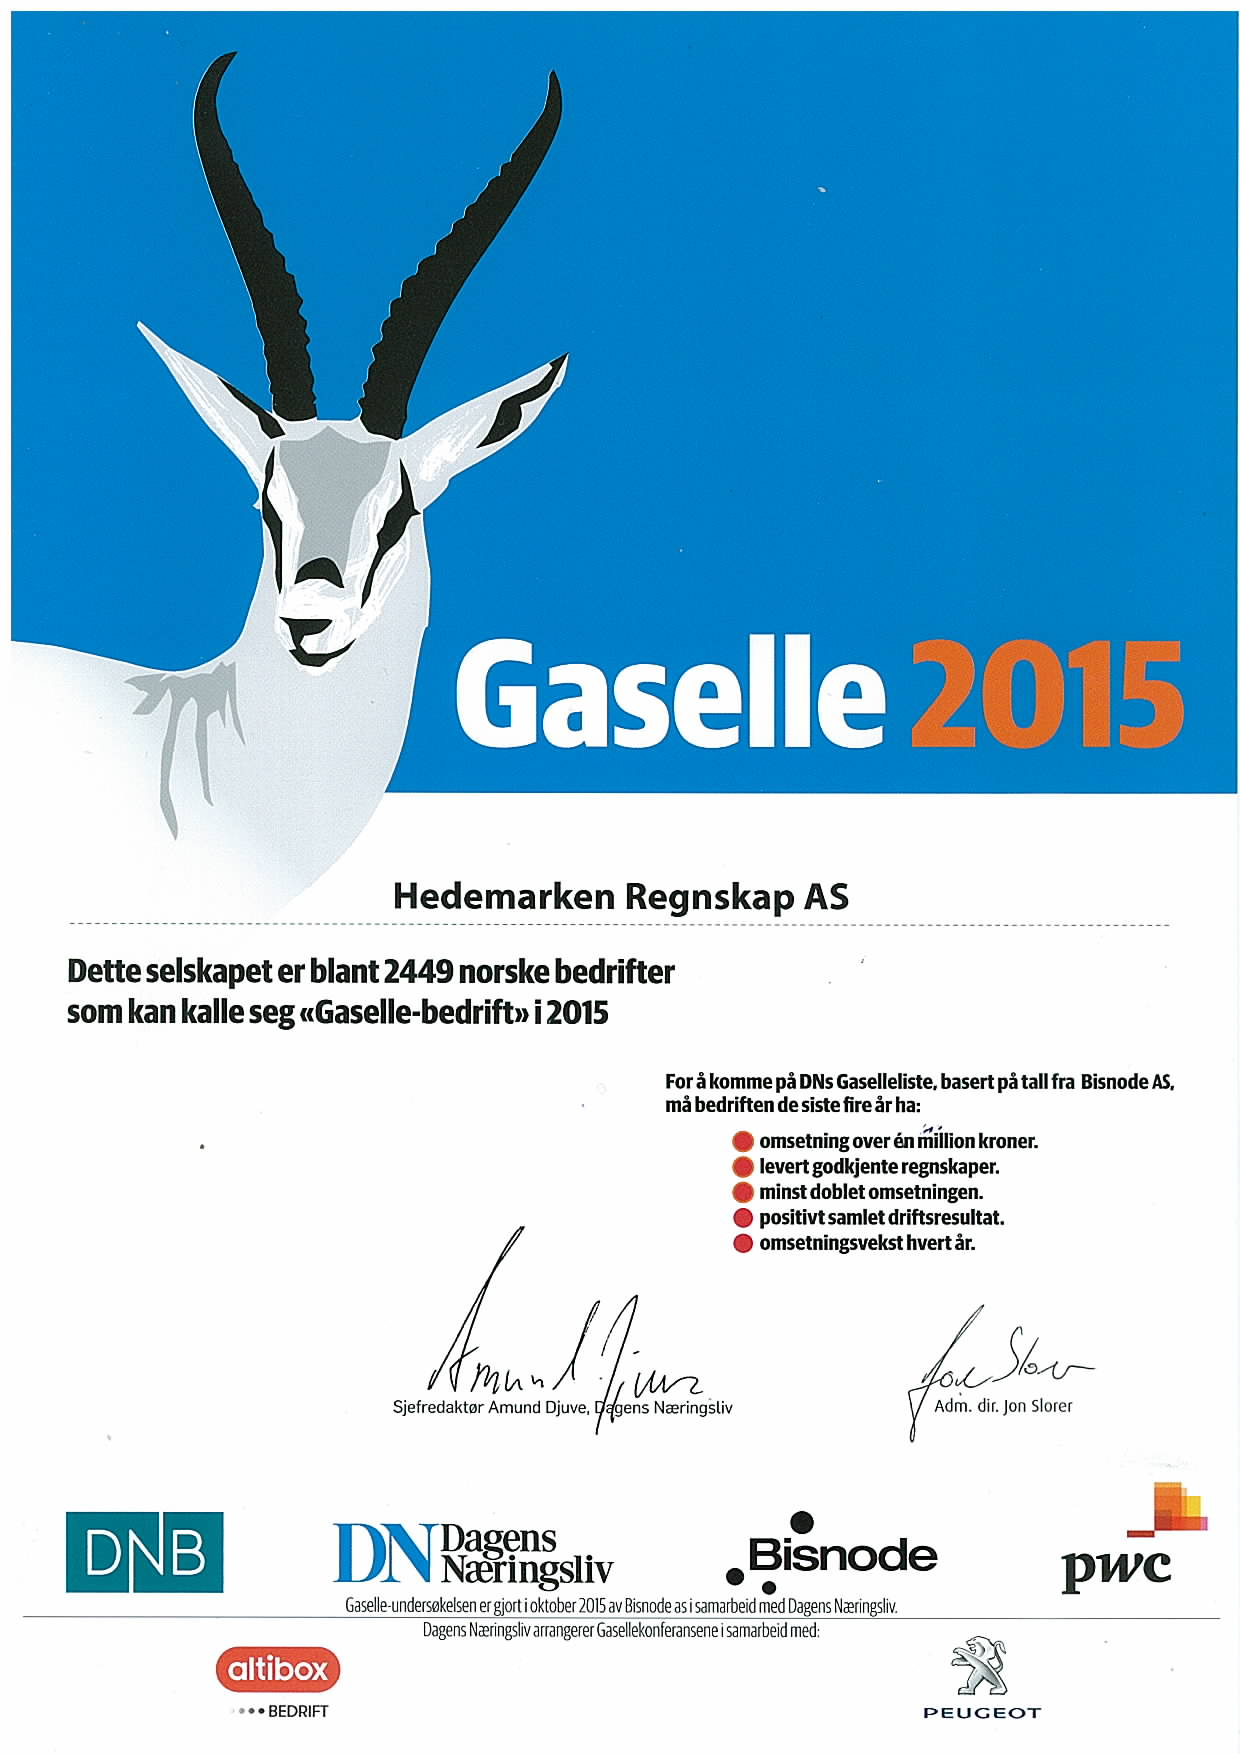 Gaselle